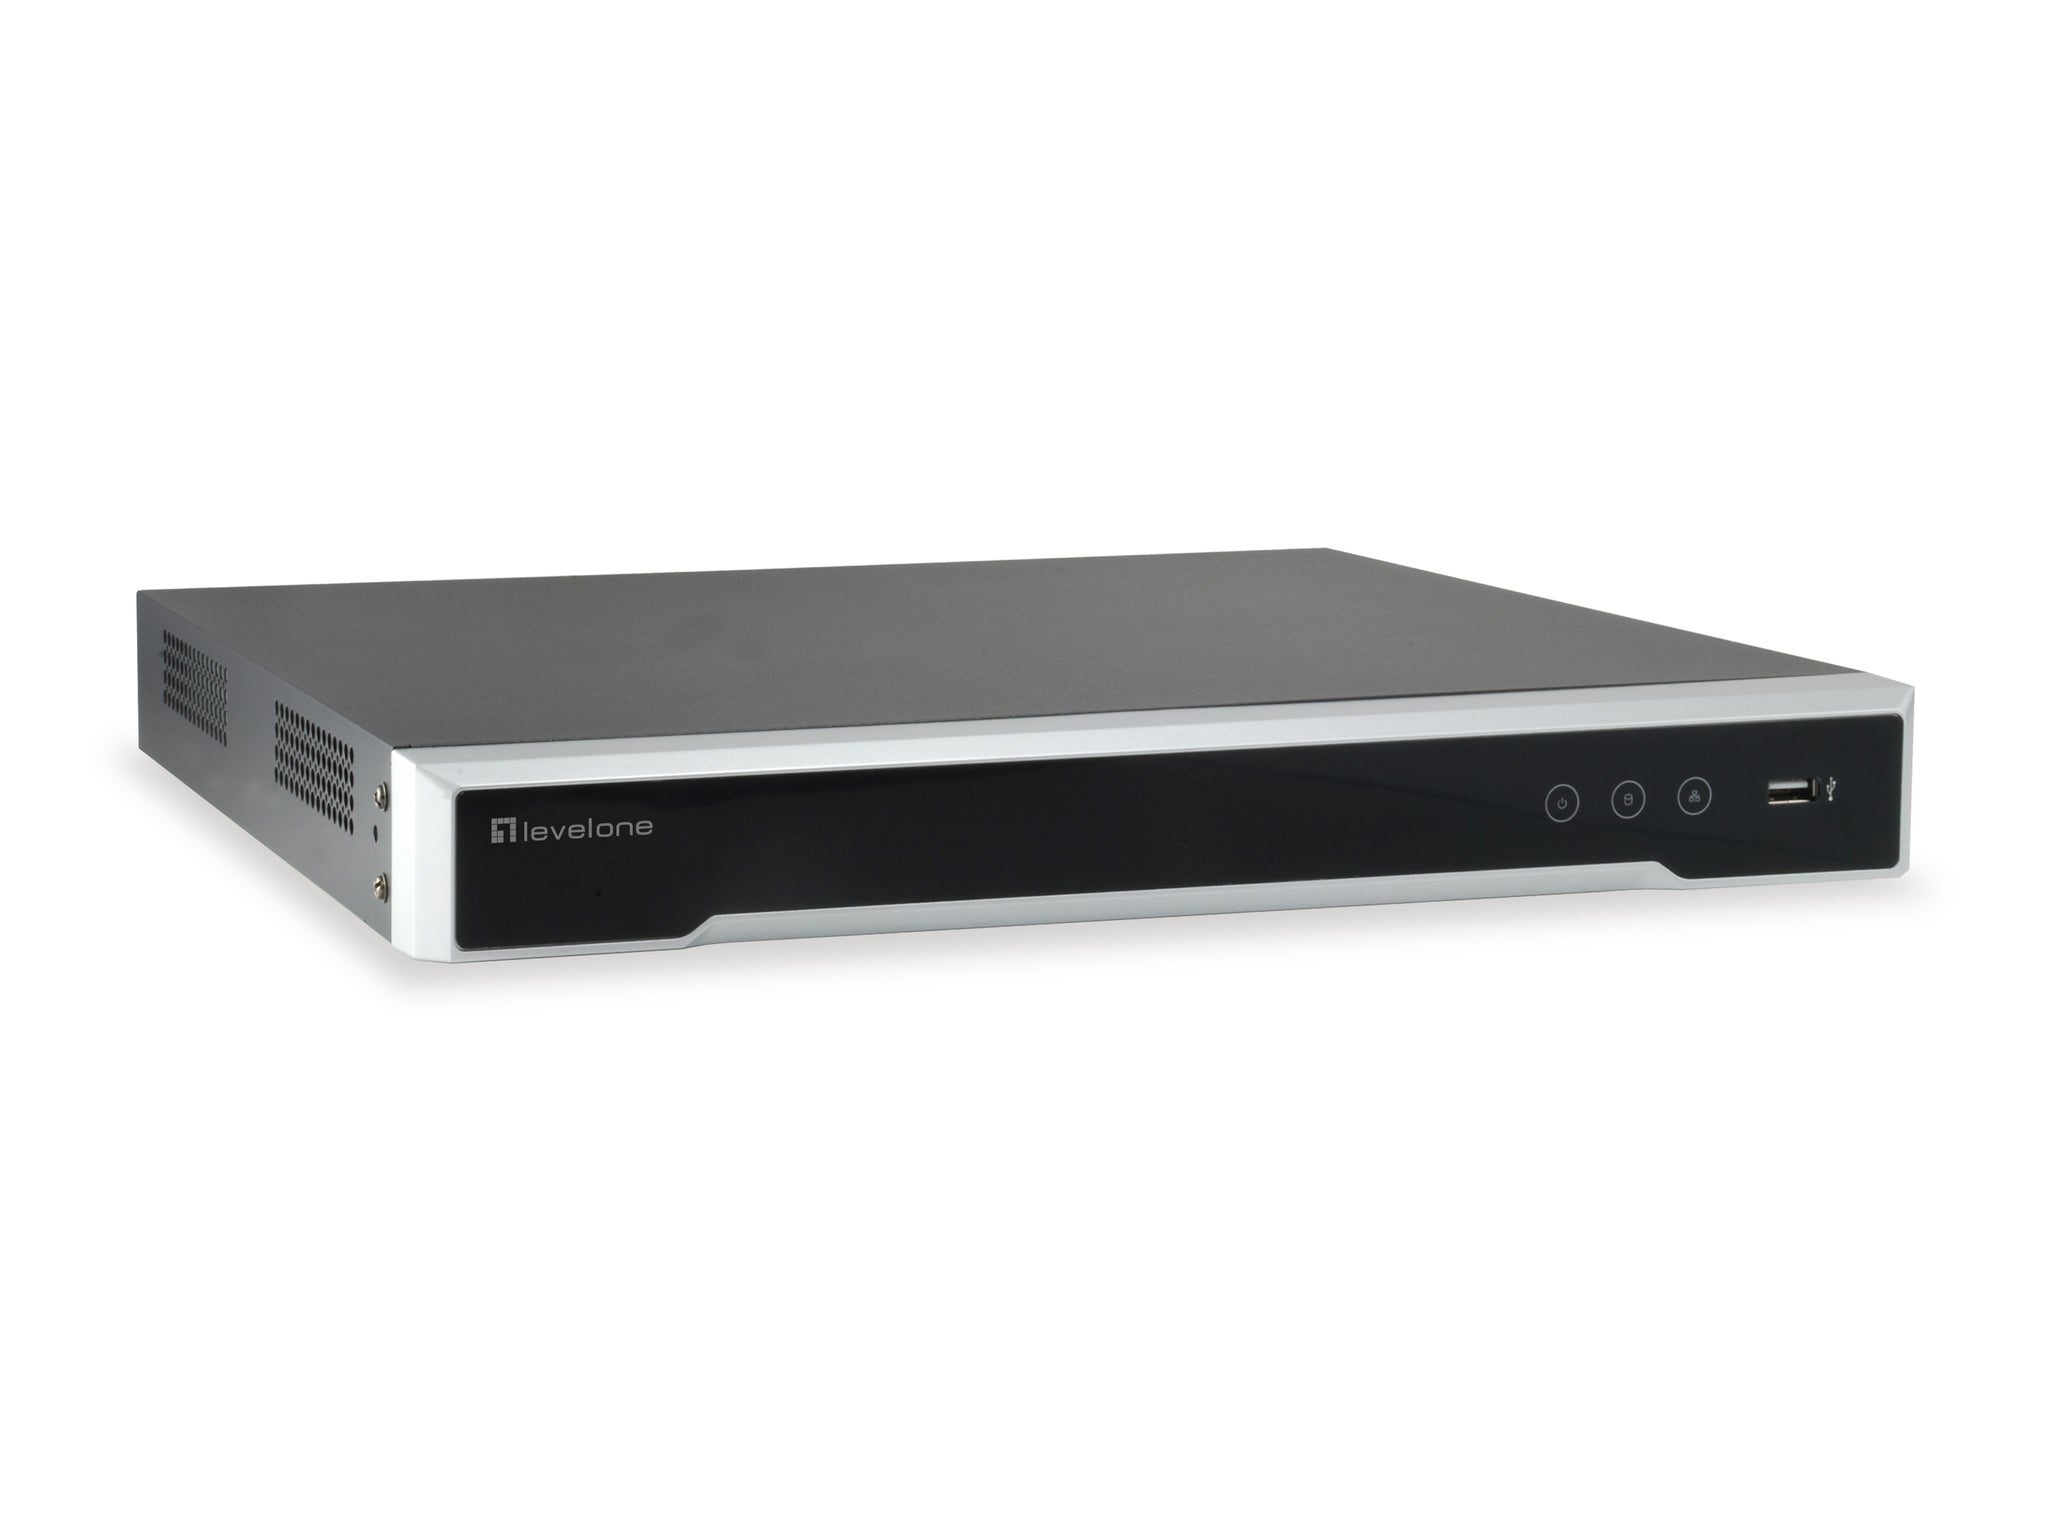 NVR-0508 8-Channel PoE Network Video Recorder